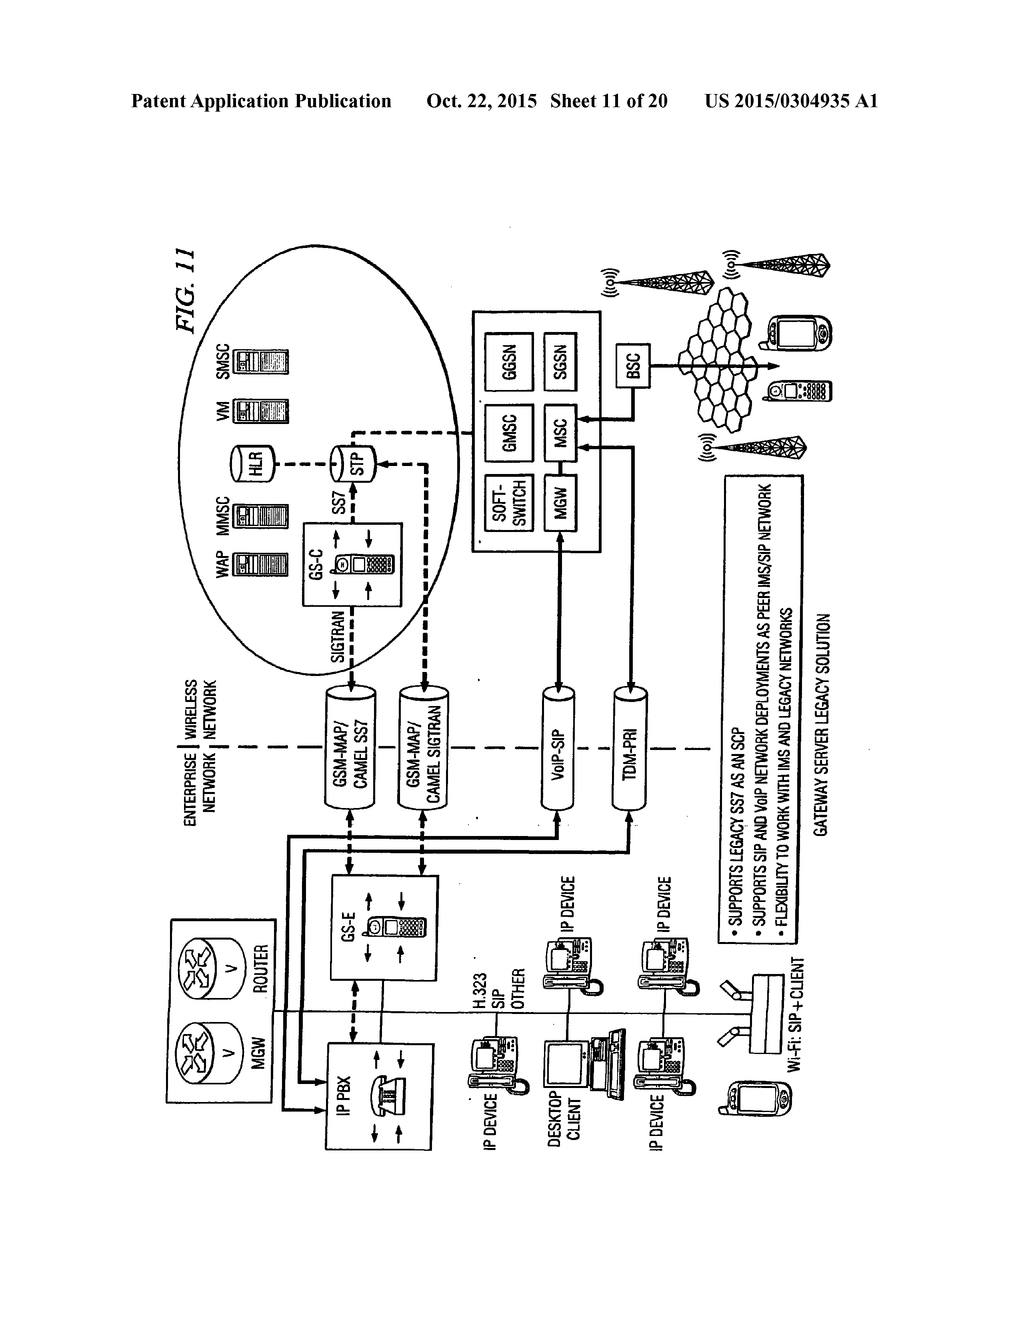 hight resolution of system and method for enabling vpn less session setup for connecting mobile data devices to an enterprise data network diagram schematic and image 12